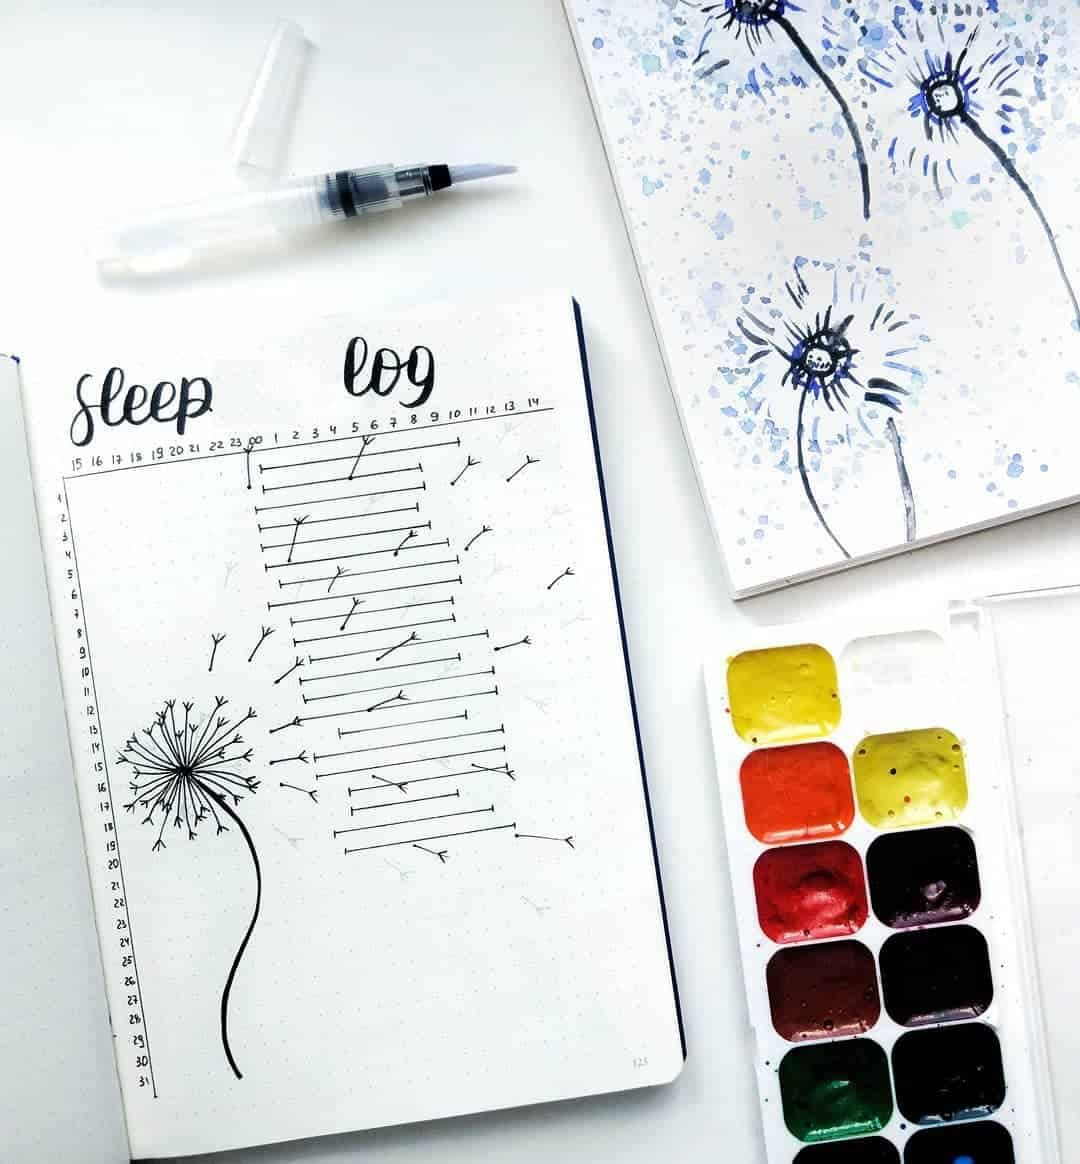 20 Sleep Trackers In Your Bullet Journal For Better Sleep